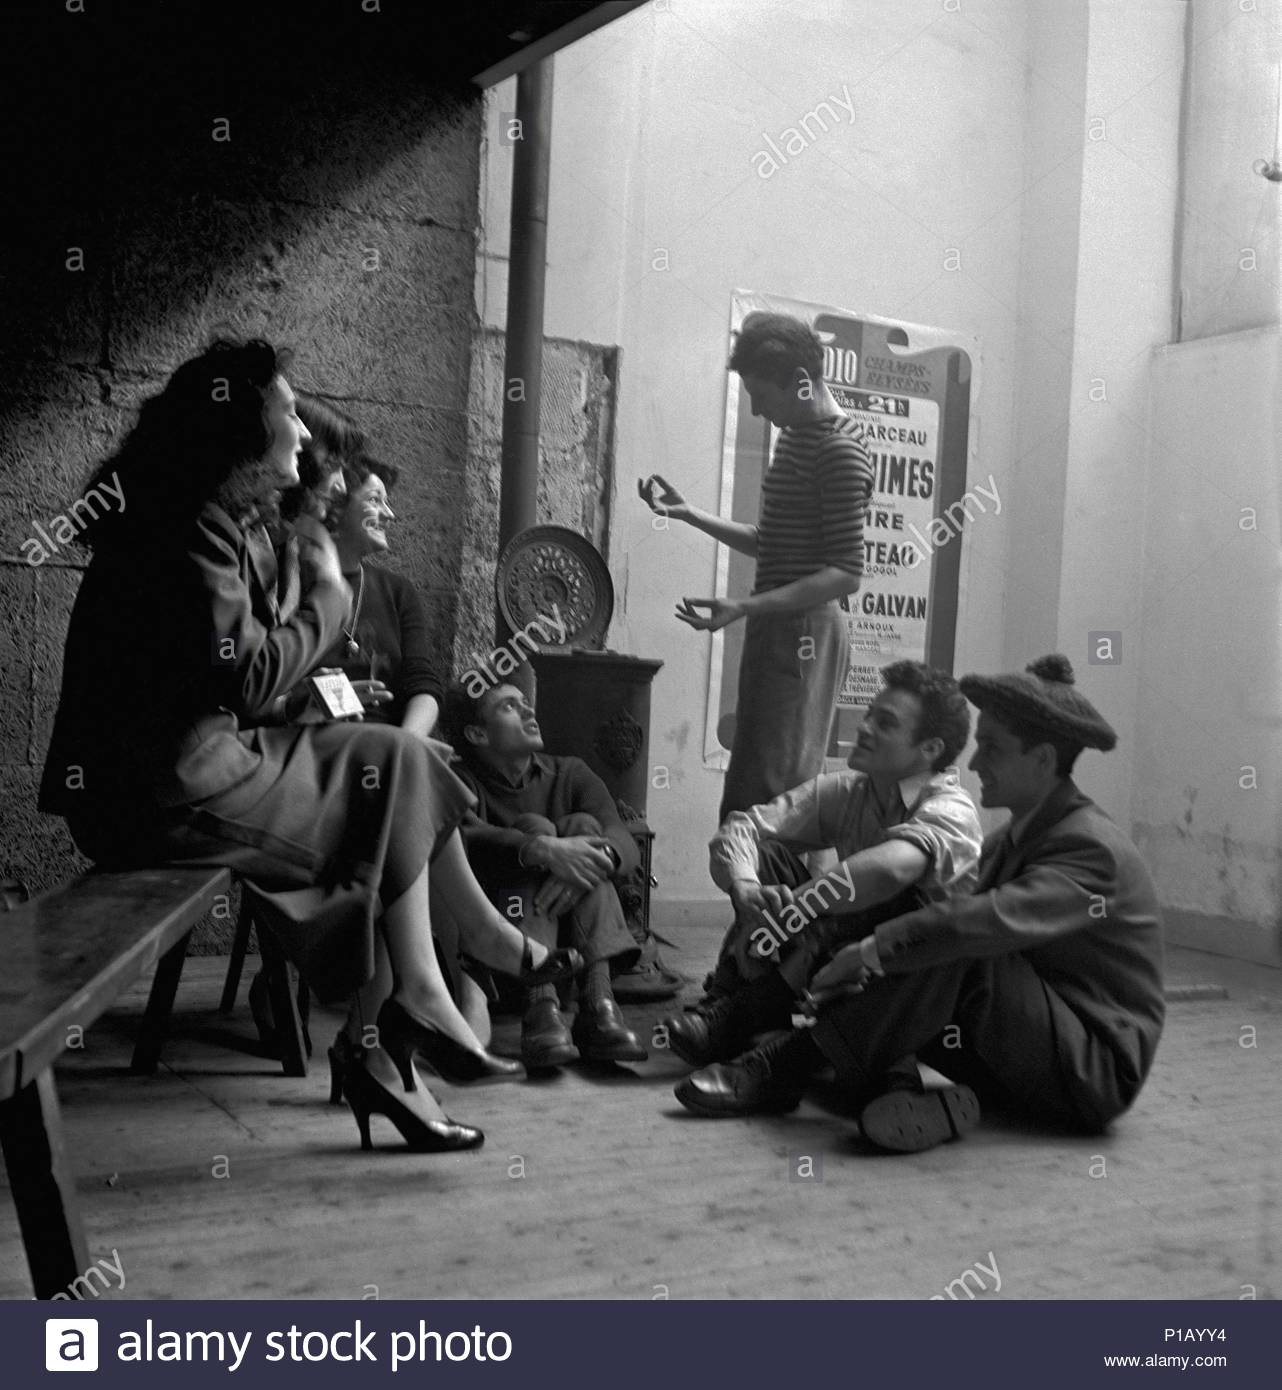 Marcel Marceau, the French mime who created the character 'Bip'. Marceau talking to his crew about a new project. Paris, 1951. Location: Townscape, Paris, France. - Stock Image